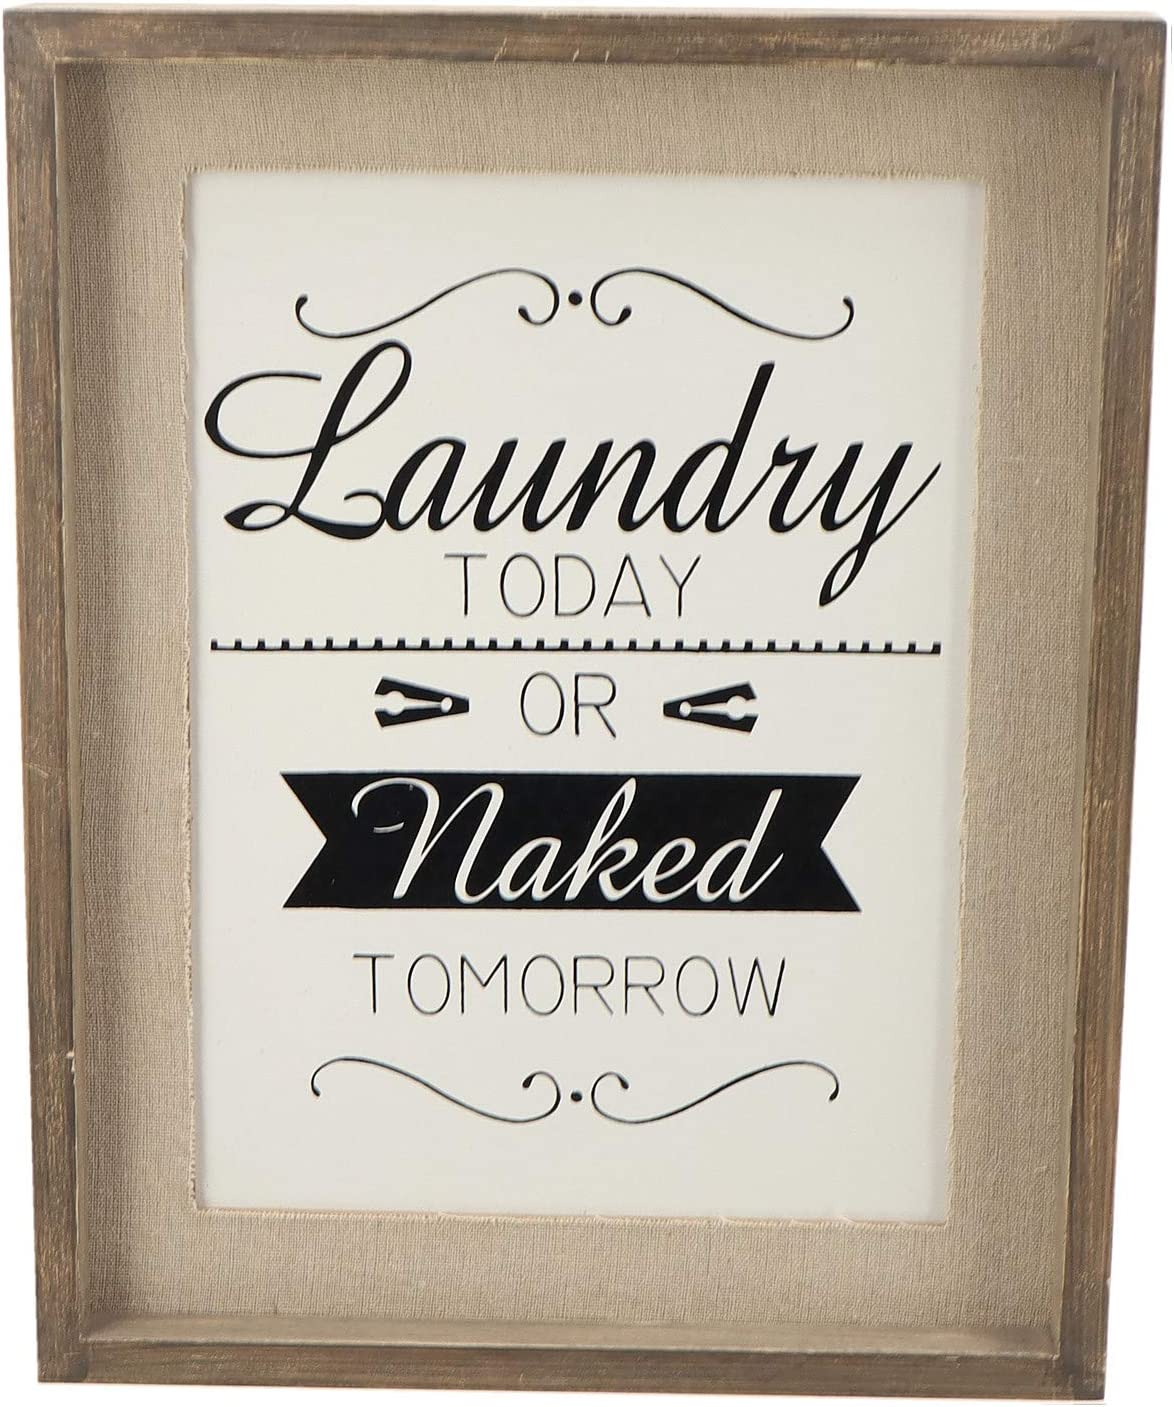 Parisloft Laundry Room Signs Laundry Today or Naked Tomorry Sign Plaque Laundry Wall Hanging Decor 10.8''x1''x13.8''